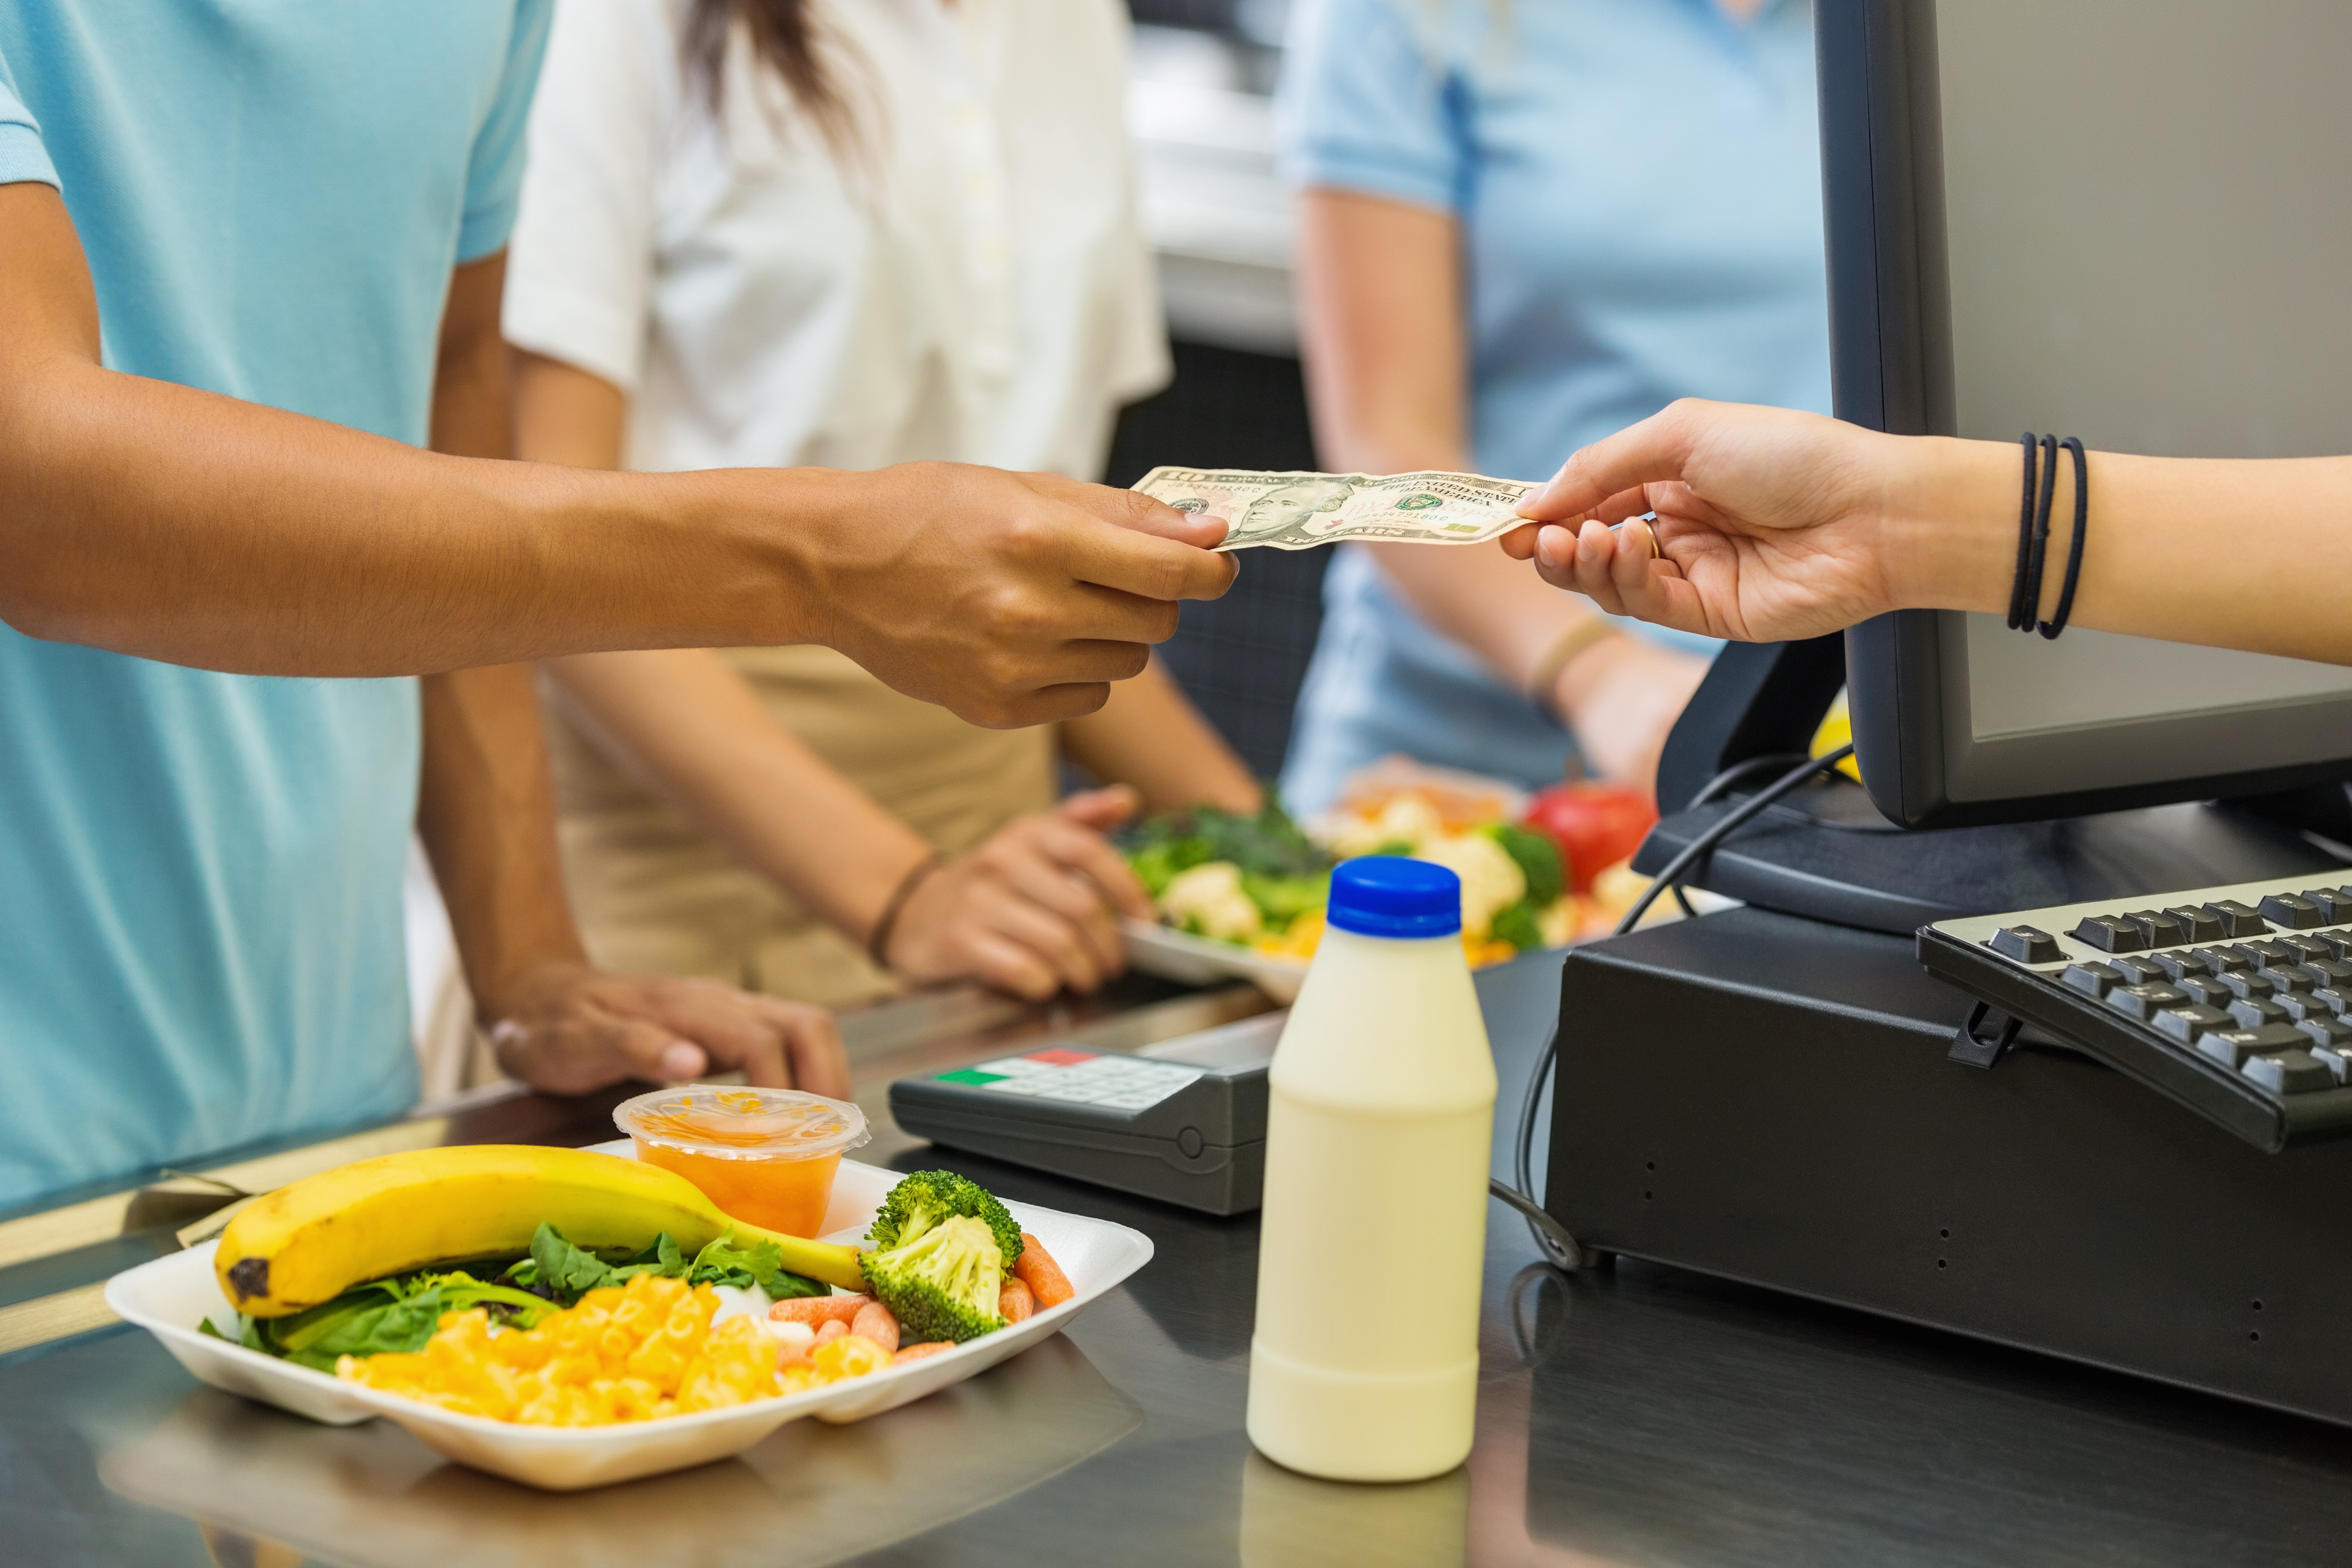 Student paying for school lunch with cash in cafeteria at the register